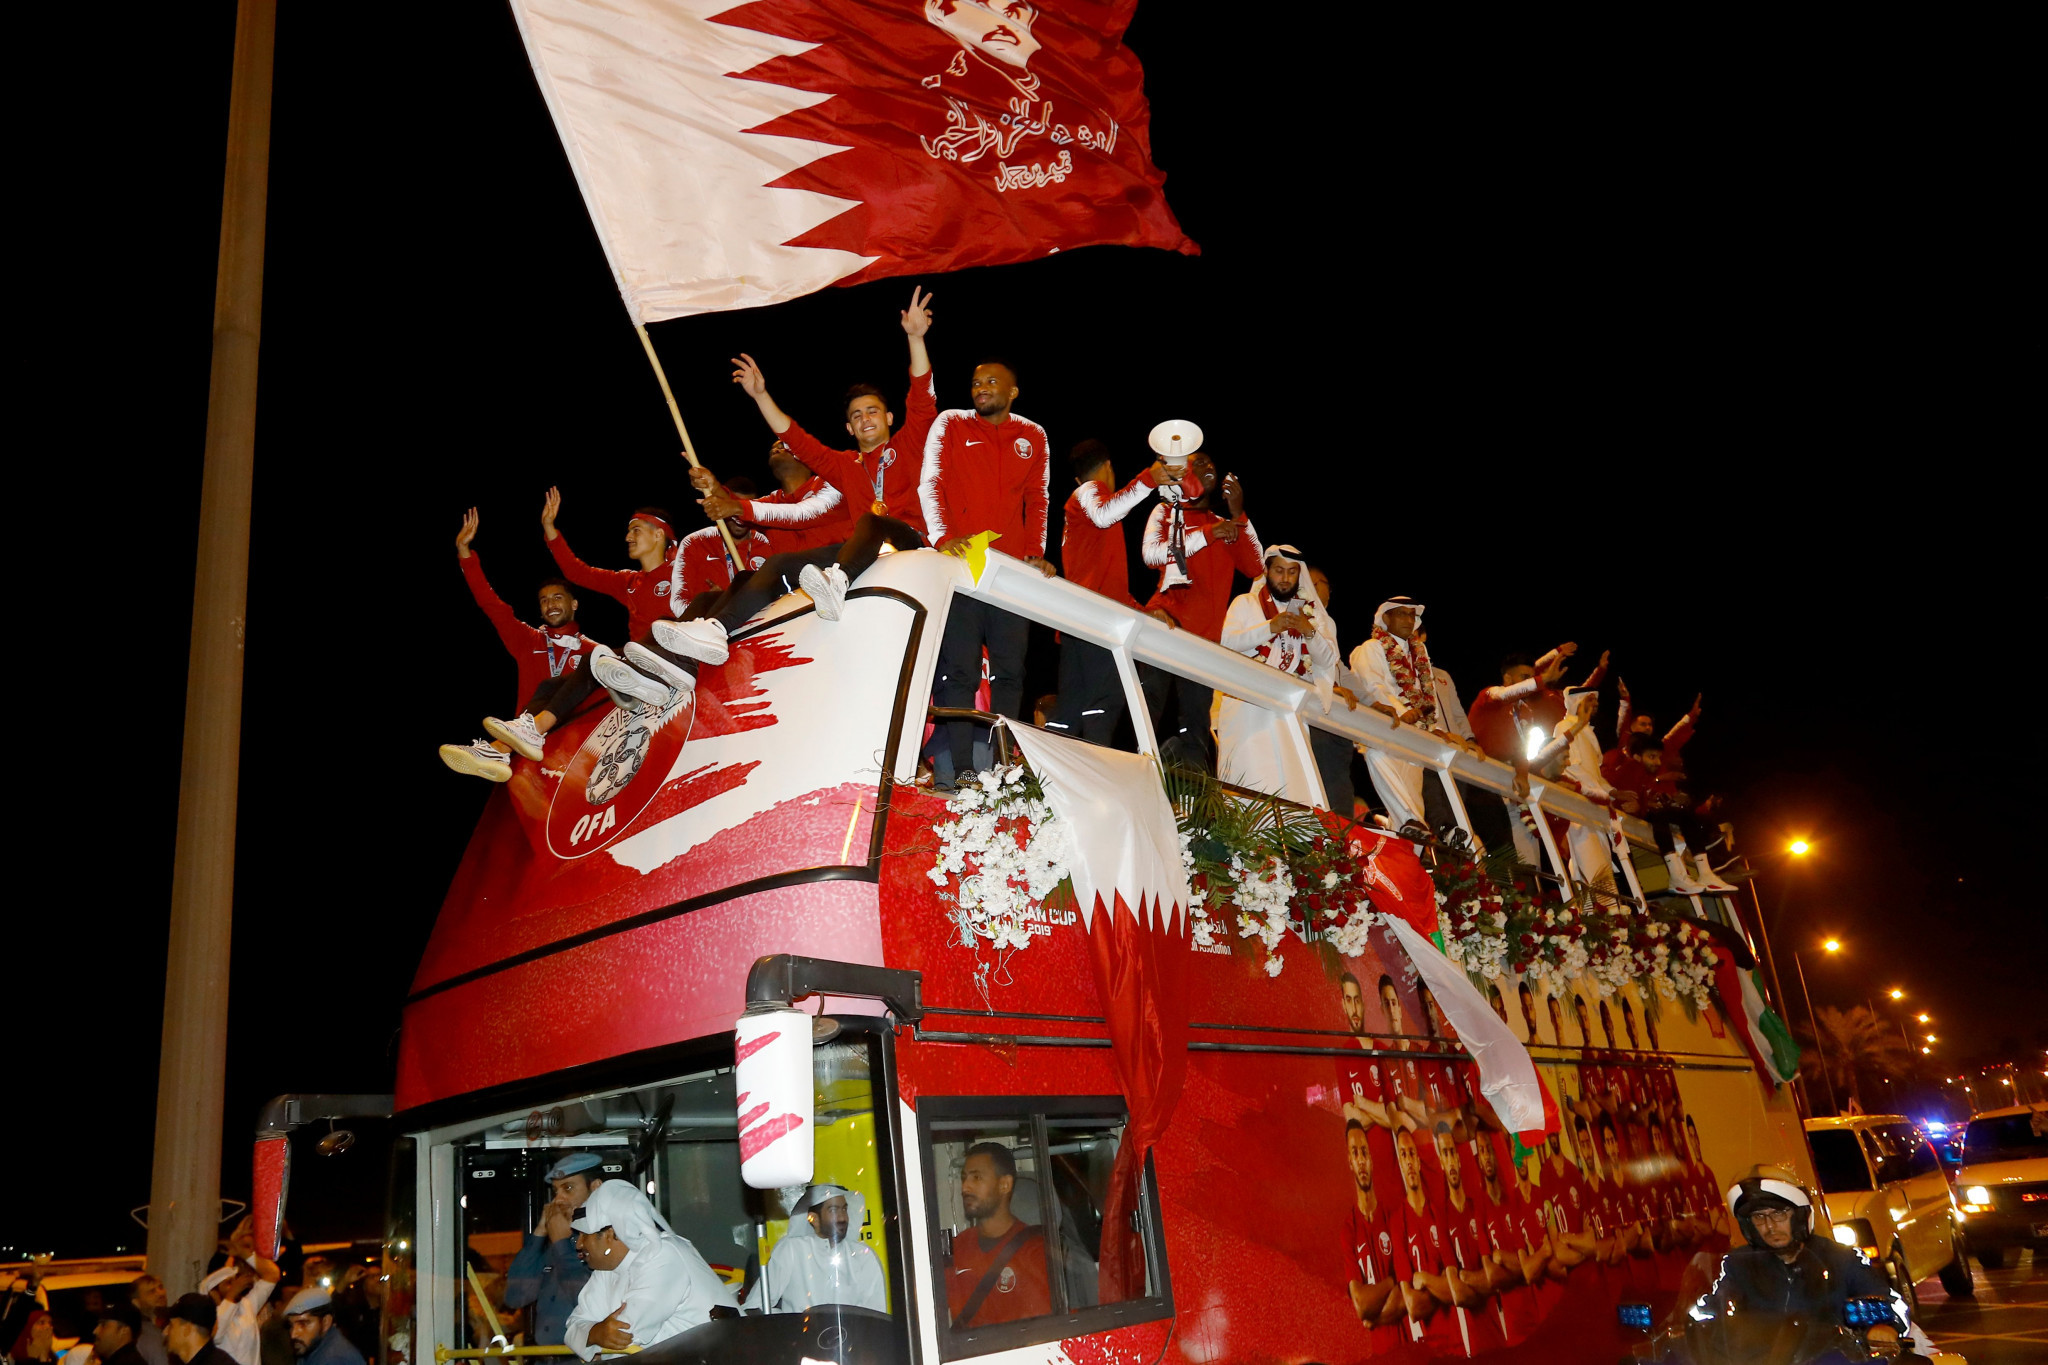 The Qatari football team celebrate their Asian Cup victory, illustrating how quickly fortunes can change ©Getty Images